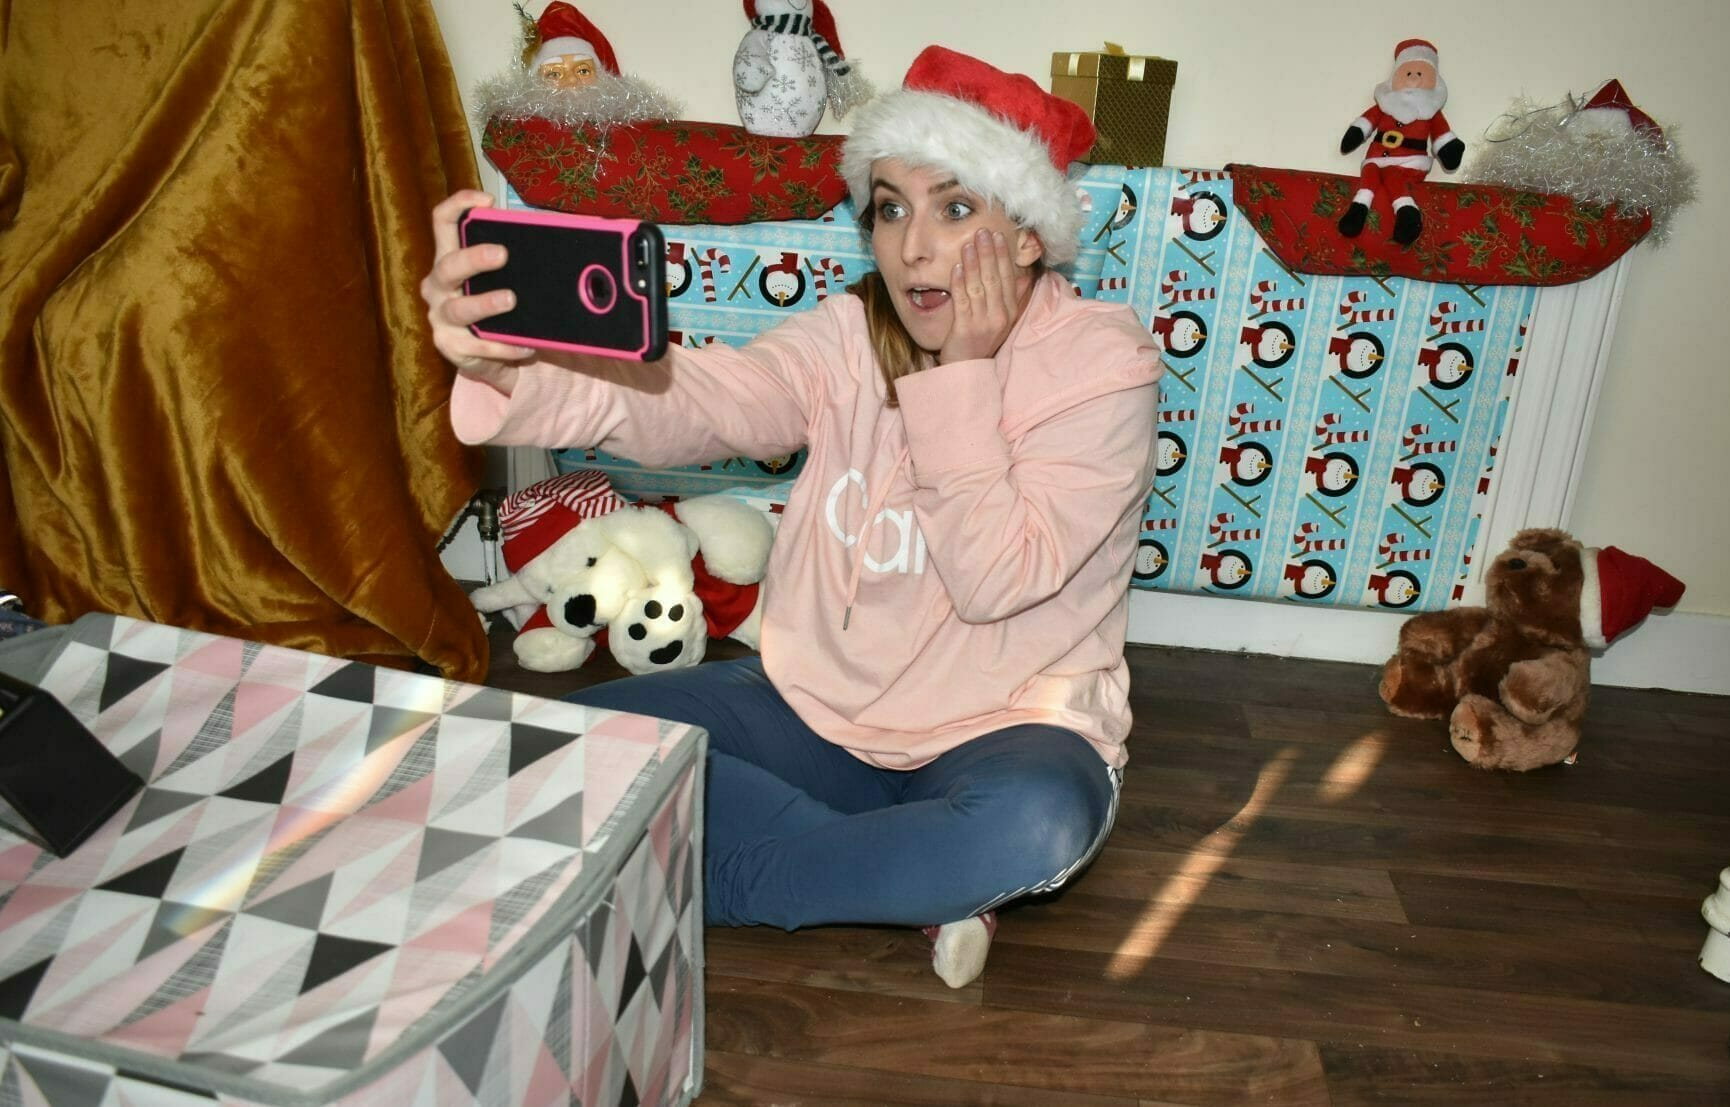 A delegate taking photos with her Christmas decorations playing Blockbusters on Location, a virtual game for team building.